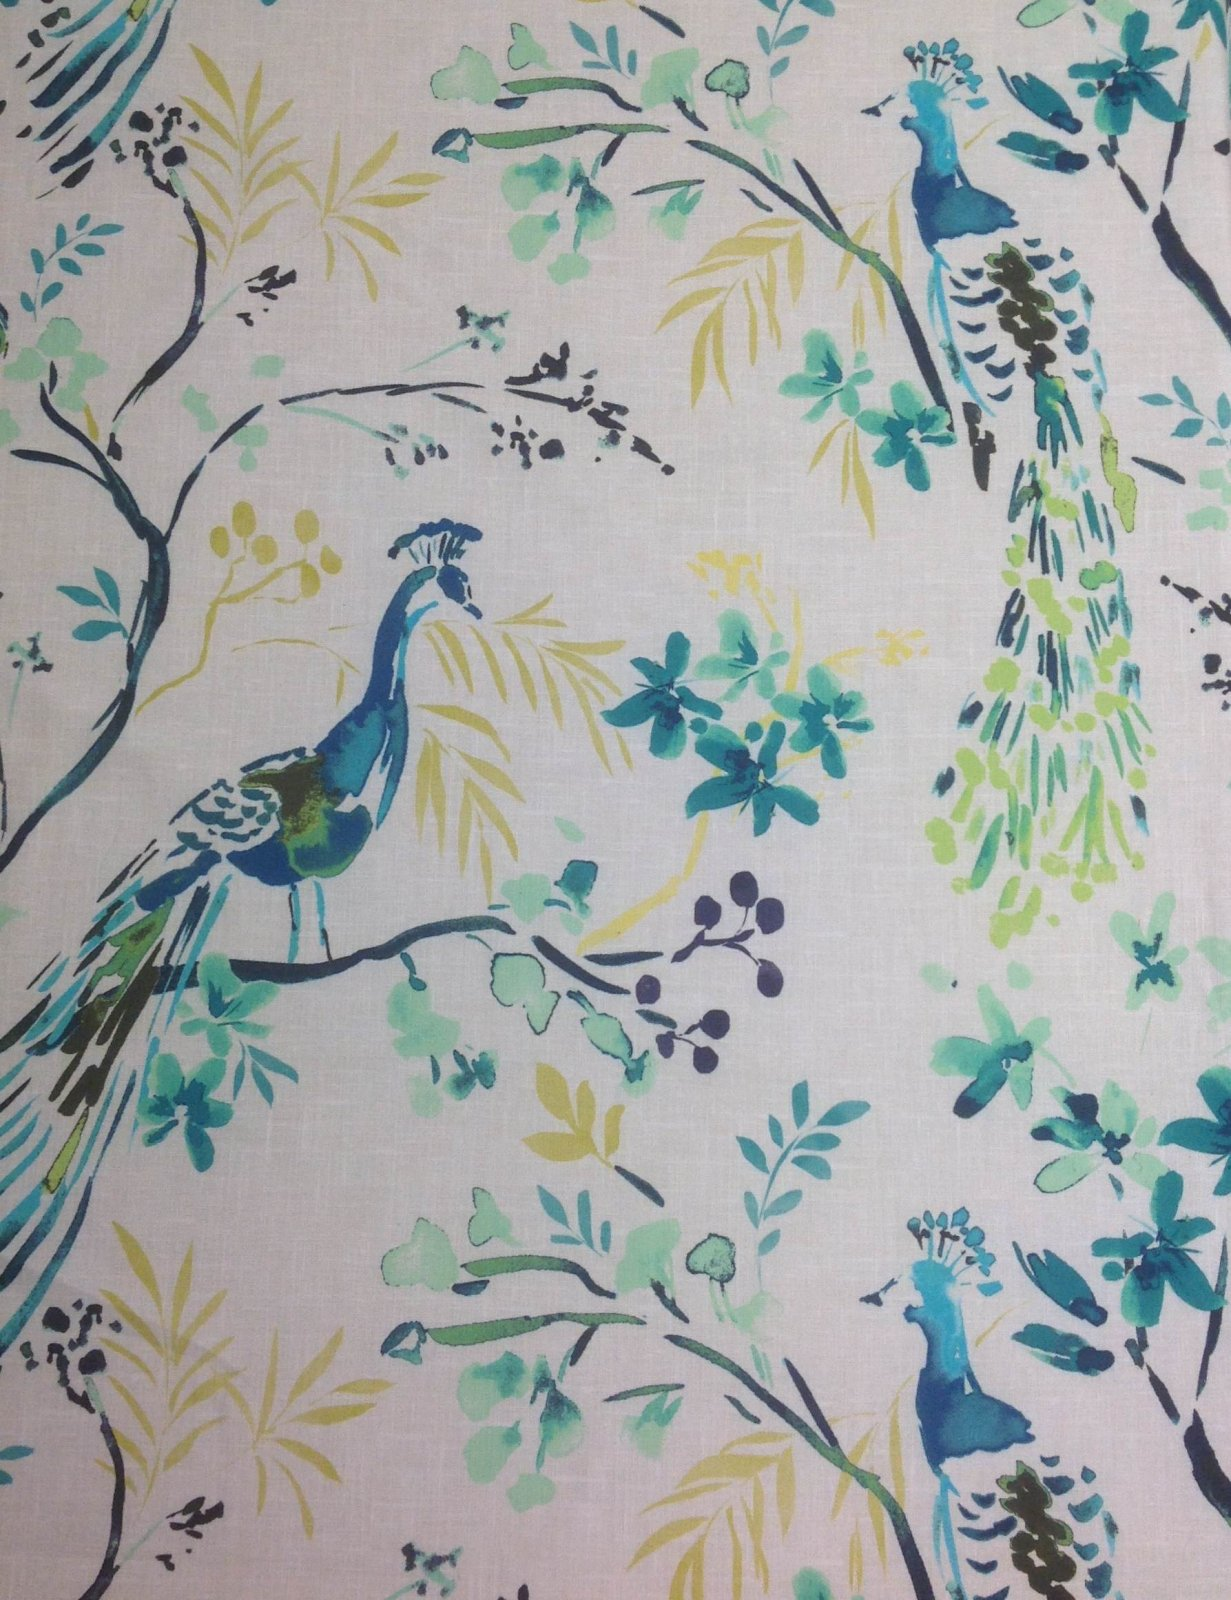 Hm120 Peacock Blue Bird Watercolor Painting Upholstery Home Decor Fabric